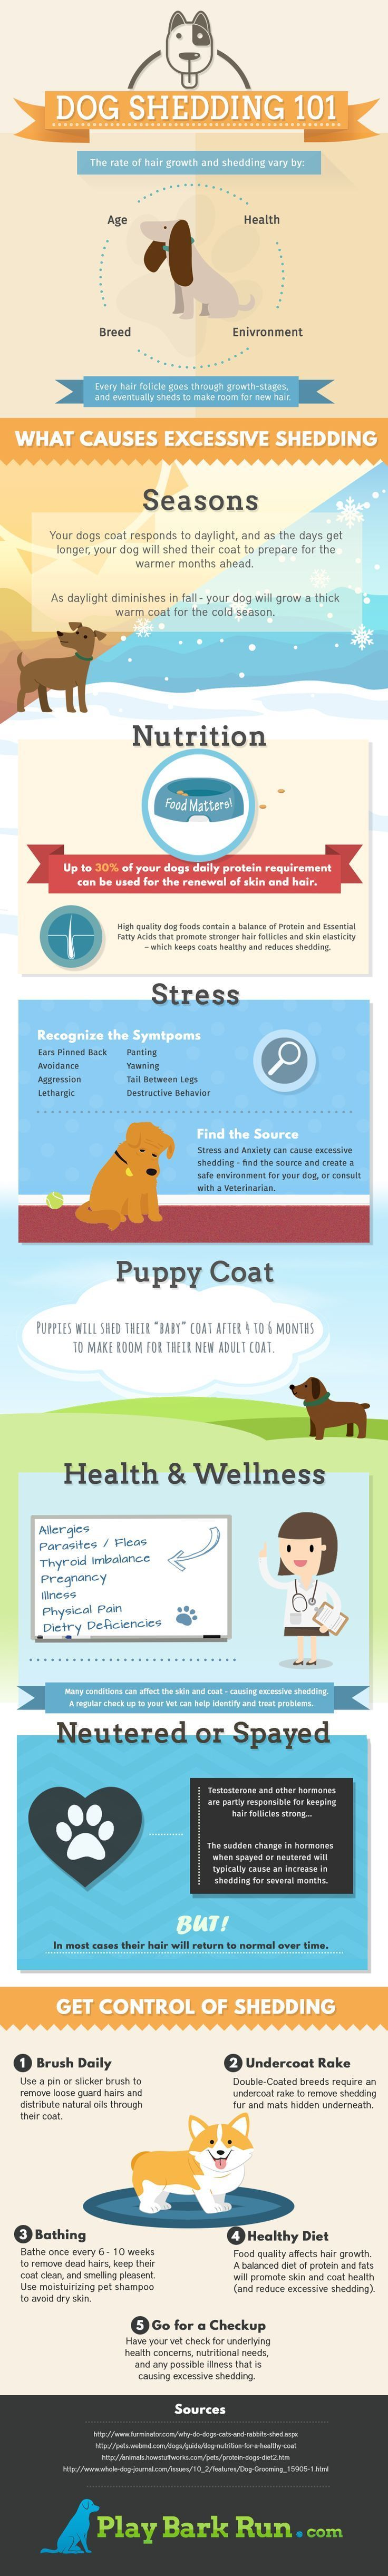 A visual guide to dog shedding - what causes shedding? how much is too much? and how do you control all that pet hair?